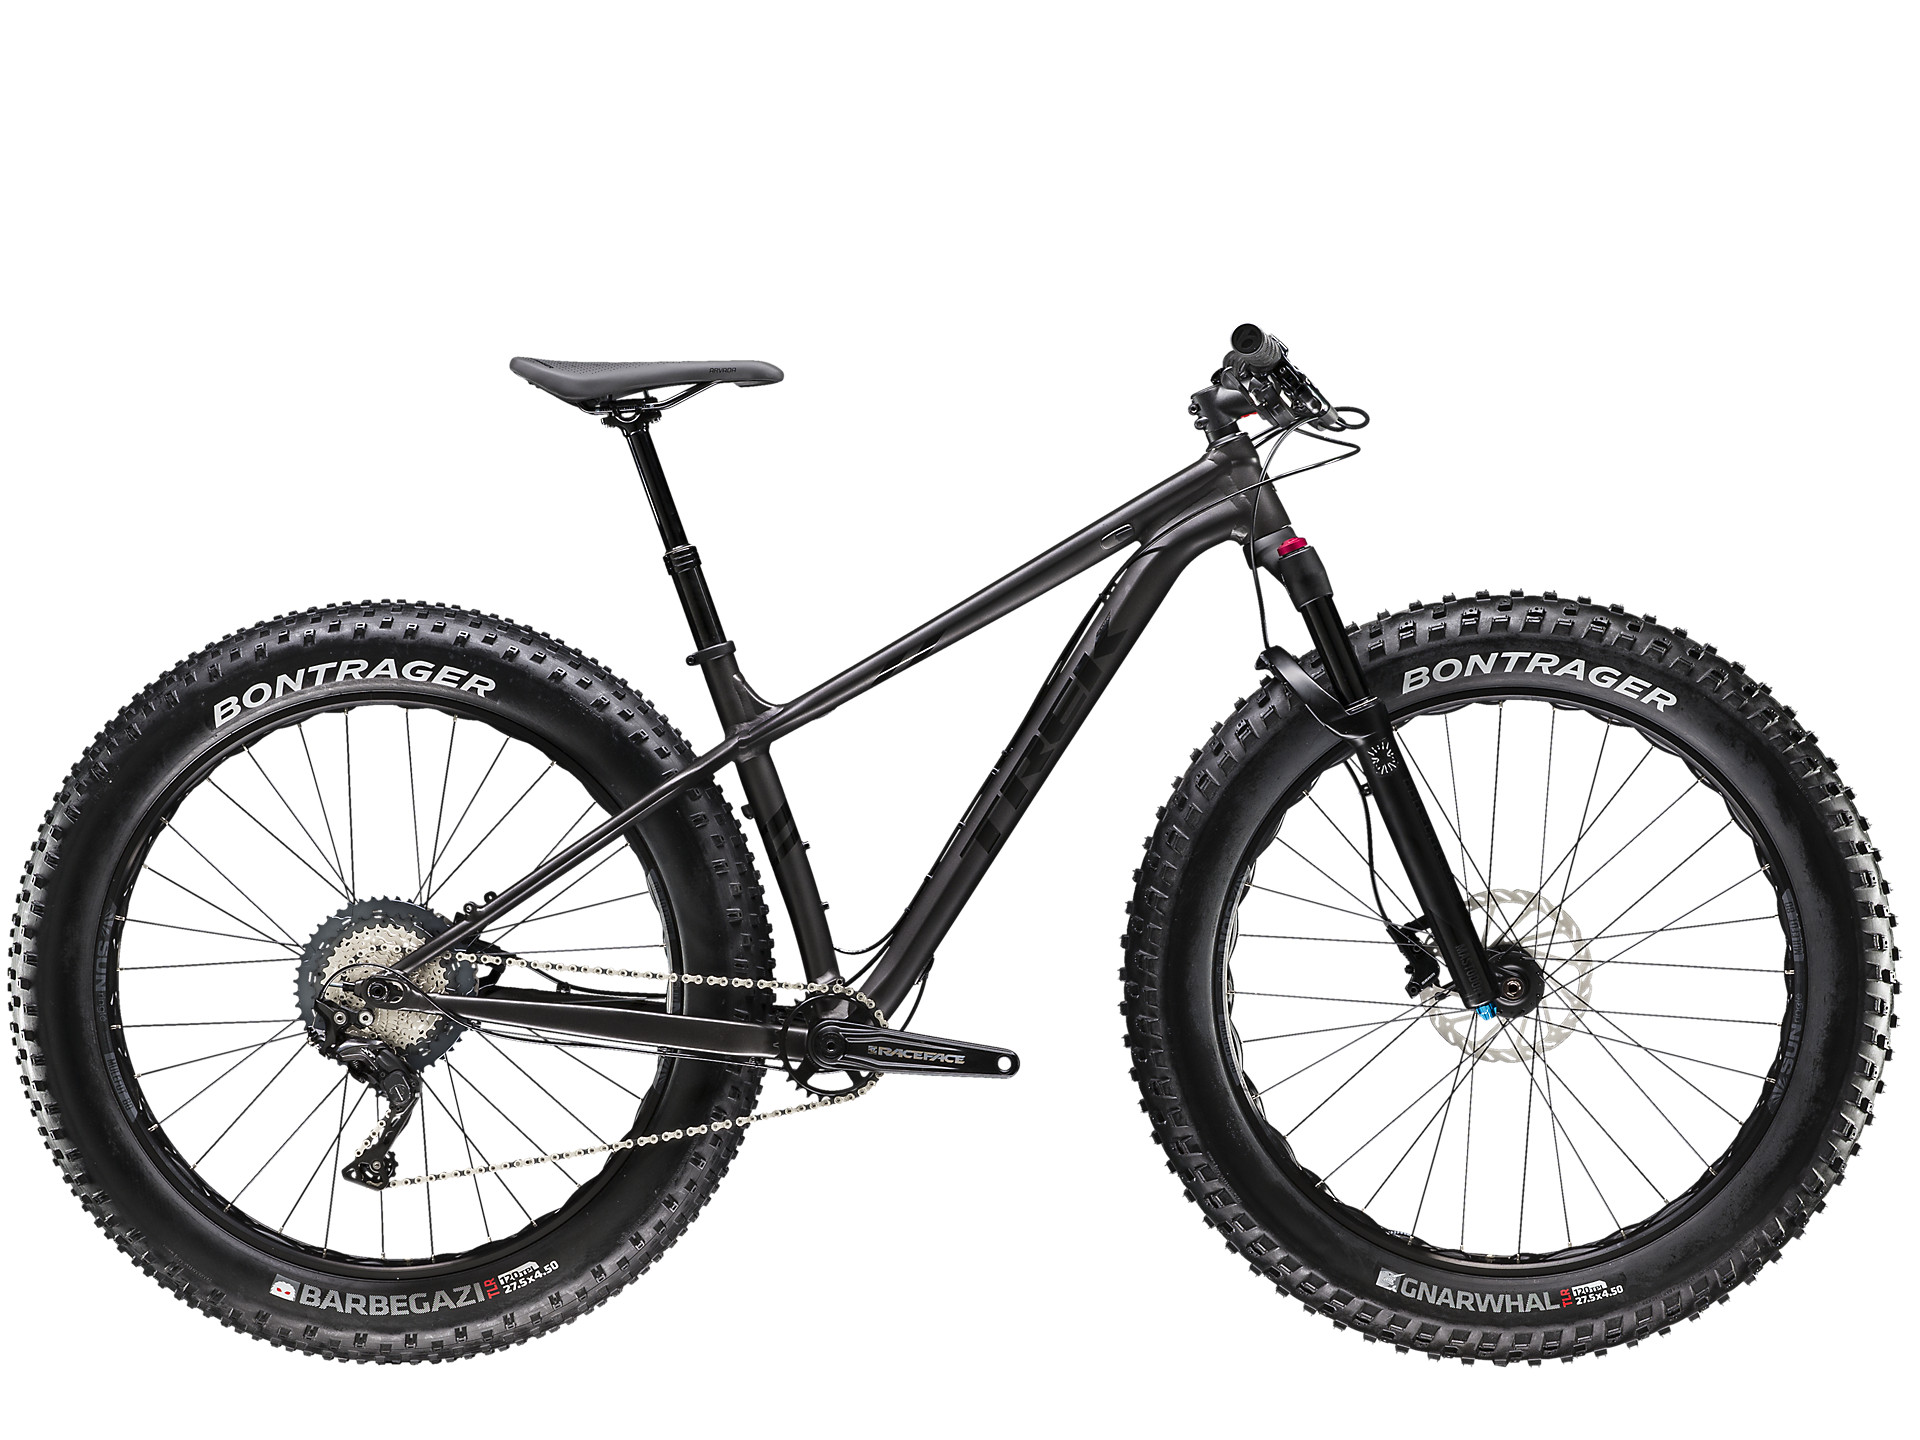 8ba575f6bb0 Hardtail mountain bikes | Trek Bikes